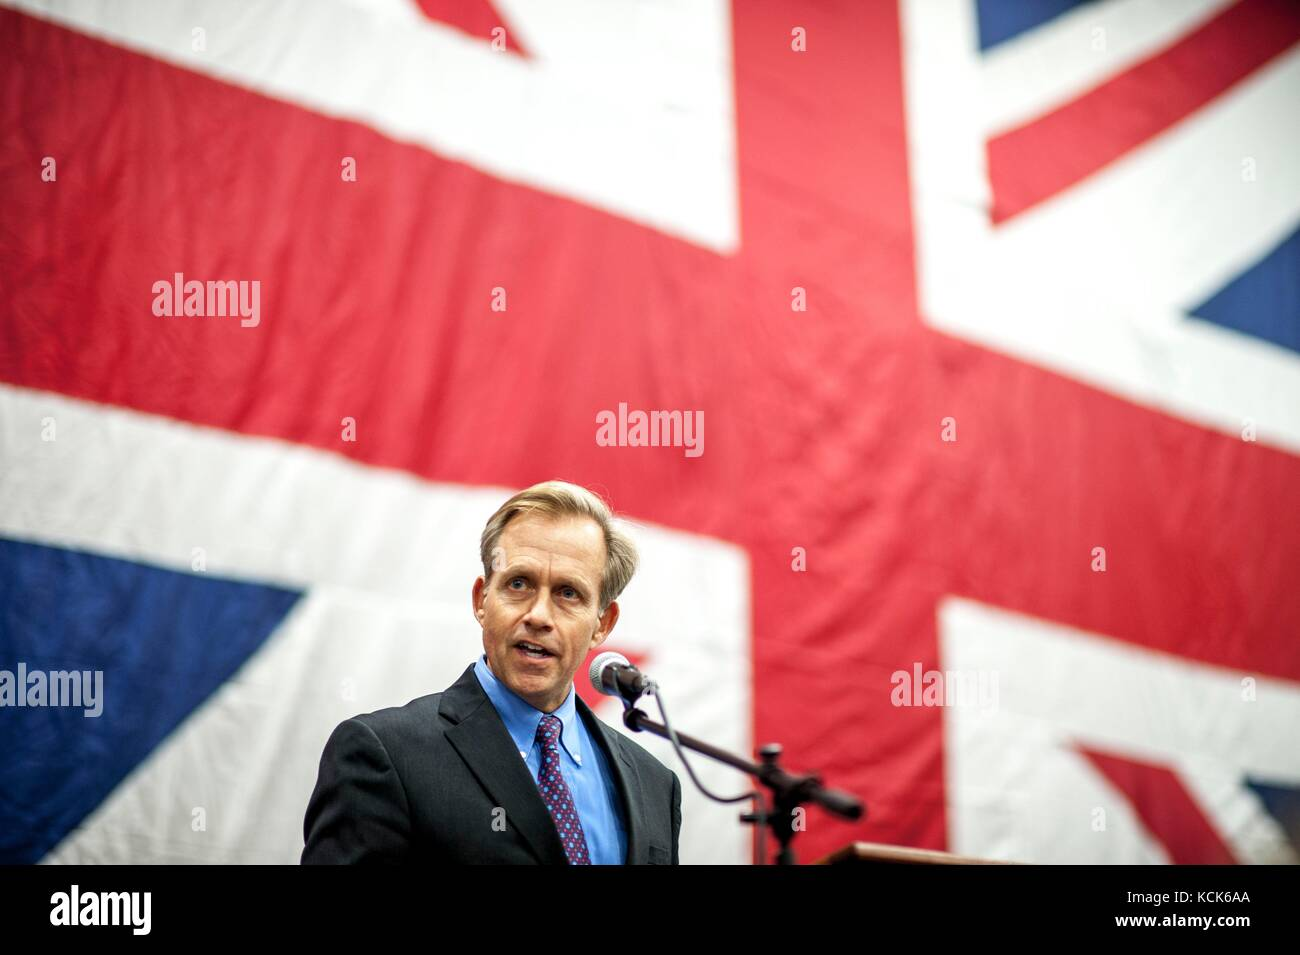 U.S. Embassy London Charge d'Affaires Ambassador Lewis Lukens speaks during a reception for senior military - Stock Image